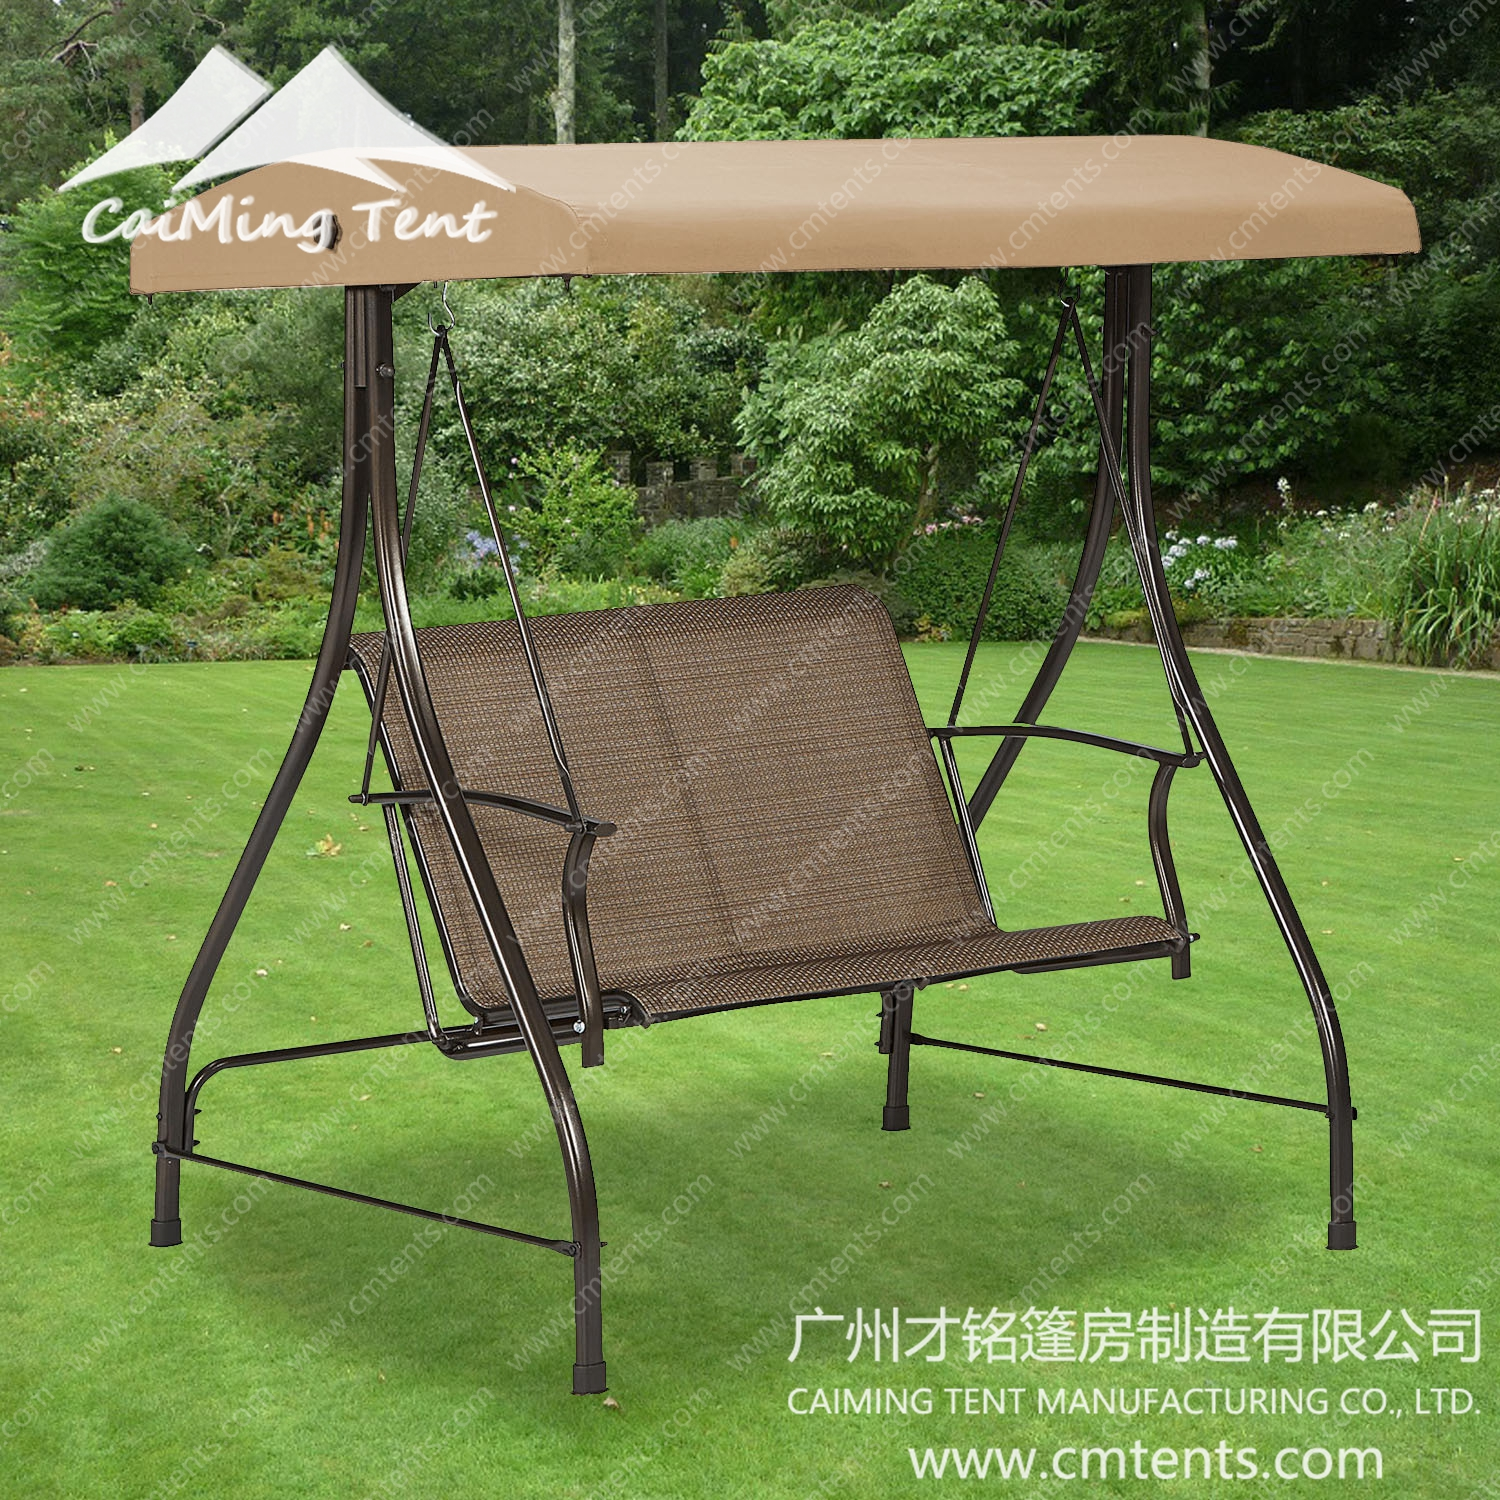 Swing Canopy,swing canopy for sale,swing tent,swing tens,swing tents for sale,outdoor swing canopy,swing canopy top replacement,swing canopy replacement lowes,patio swing canopy,swing canopy replacement walmart,wentworth swing canopy,swing sets canopy,porch swing canopy,swing canopy replacement parts,swing canopy cover,swing canopy replacement walmart,swing canopy frame,swing canopy replacements,swing canopy walmart,swing canopy hammock,swing canopy parts,swing canopy frame replacement,swing canopy replacement top,swing canopy,swing canopy replacement,swing canopy frame connectors,swing canopy and cushion replacement,swing canopy and cushion set,swing canopy amazon,canopy swing assembly instructions,canopy swing at lowes,canopy swing accessories,swing and canopy,canopy swing at walmart,canopy swing at target,outdoor swing canopy and cushions,making a swing canopy,sewing a swing canopy,a frame swing canopy,pattern for a swing canopy,how to sew a swing canopy replacement,how to recover a swing canopy,how to replace a swing canopy,how to build a swing canopy,how to measure a swing canopy,tete a tete swing canopy,swing canopy bed,swing bench canopy replacement,swing bench canopy,canopy swing bed costco,canopy swing big lots,swing bench canopy cover,canopy swing bed amazon,canopy swing bed replacement cushion,canopy swing bed cover,canopy swing blue,b&q swing canopy,b&q garden swing canopy,b&q swing seat canopy,swing canopy cushion replacement,swing canopy canada,swing canopy cushions,swing canopy costco,swing canopy chair,swing chair canopy replacement cover,canopy swing cover weather protection,canopy swing cushions walmart,canopy swing clearance,swing canopy diy,canopy swing deals,swing set canopy diy,swing canopy replacement home depot,canopy swing home depot,diy swing canopy replacement,deck swing canopy,double swing canopy,swing set canopy home depot,diy swing canopy frame,sand-d 2010 swing canopy replacement,swing seat canopy ebay,ebay swing canopy replacement,ebay swing canopy,extreme swing canopy punta cana,extreme swing canopy,swing canopy frame replacement parts,swing canopy fabric,swing canopy fabric replacement,swing canopy for sale,swing canopy frame parts,canopy swing for baby,canopy swing fortunoff,canopy swing glider,swing glider canopy replacement,canopy swing garden treasures,outdoor swing glider canopy,3 seater swing canopy green,garden swing canopy,garden swing canopy replacement,garden swing canopy replacement uk,garden swing canopy sale,canopy glider swing plans,swing canopy hardware,swing hammock canopy covers,swing hammock canopy replacement,canopy swing hooks,swing hammock canopy uk,porch swing canopy hardware,outdoor swing canopy hardware,swing canopy ideas,canopy swing instructions,swing wall instant canopy,jcpenney swing canopy,swing canopy knobs,swing canopy kroger,canopy swing kmart,swing set canopy kit,replacement swing canopy kroger,swing n slide canopy kit,canopy swing adjustment knob,kmart swing canopy replacement,patio swing with canopy kmart,kmart canopy swing,swing canopy lowes,swing canopy replacement lowes,replacement swing canopy large size,canopy swing cover lowes,lawn swing canopy,lawn swing canopy replacement,luxor swing canopy,large swing canopy replacement,log swing canopy,swing canopy material,canopy swing menards,canopy swing manual,canopy swing manufacturers,canopy swing magaliesberg,canopy swing makeover,swing seat canopy material,patio swing canopy material,swing seat canopy makers,mainstay swing canopy replacement,swing seat canopy nz,patio swing no canopy,swing seat canopy replacement nz,swing chair canopy replacement nz,swing n slide canopy,canopy swing outdoor bed,canopy swing outdoor,canopy swing on sale,swing canopy replacement outdoor furniture,outdoor swing canopy fabric,outdoor swing canopy top,outdoor swing canopy parts,outdoor swing canopy replacement porch top cover,swing canopy pattern,canopy swing plans,canopy swing patio,canopy swing patio furniture,swing seat canopy parts,swing seat canopy prices,outdoor swing canopy pattern,canopy swing queenstown,swing bench canopy b&q,swing canopy replacement 75x45,swing canopy replacement sale,swing canopy replacement costco,swing canopy replacement canada,swing canopy screws,swing canopy sets,swing seat canopy,swing set canopy replacement,swing set canopy covers,swing seat canopy fabric,swing set canopy tarp,swing set canopy replacement rainbow,swing seat canopy frame,swing seat canopy screws,swing canopy top replacement,swing canopy top,swing canopy toronto,canopy swing target,swing canopy replacement toronto,replacement swing canopy target,swing set tarp canopy replacement,swing canopy replacement canadian tire,swing canopy uk,garden swing canopy uk,swing canopy replacement uk,swing seat canopy uk,universal swing canopy replacement,universal swing canopy,swing set vinyl canopy,swing with canopy,swing with canopy and cushions,canopy swing with side tables,swing wall canopy,canopy swing with cup holder,canopy swing with center console,swing with canopy furniture,swing with canopy replacement parts,canopy swing with table,swing w canopy,swing canopy 75 x 45,replacement swing canopy 85 x 45,replacement swing canopy 86 x 45,replacement swing canopy 60 x 45,75 x 45 swing canopy,45 x 60 swing canopy,yard swing canopy replacement,yard swing canopy,yard swing canopy brackets,zellers swing canopy replacement,2 seater swing canopy replacement,2 seat swing canopy replacement,2 person swing canopy replacement,2 seater swing canopy,2 seat swing canopy,2 person swing canopy,2 seater garden swing canopy,2 person canopy swing replacement cushions,2 seat sling swing canopy,2 seater swing seat canopy replacement,canopy swing 3 person,garden swing canopy 3 seater,3 seater swing canopy replacement,3 seat swing canopy replacement,3 person swing canopy replacement,3 seater swing canopy,3 person swing canopy,3 seat swing canopy,3 seat swing canopy replacement uk,3 seater swing canopy frame,3 seat swing canopy cover,4 person canopy swing,swing canopy 76 x 45,77 x 43 swing canopy,77 x 43 swing canopy replacement,swing canopy,swing canopy replacement parts,swing canopy cover,swing canopy replacement walmart,swing canopy frame,swing canopy replacements,swing canopy walmart,swing canopy hammock,swing canopy parts,swing canopy frame replacement,swing canopy,swing canopy replacement cover,swing canopy replacement,patio swing canopy replacement,swing canopy hammock,swing canopy cover,swing canopy pillow,swing canopy and cushion replacement,swing canopy replacement cover 75 x 45,swing canopy frame replacement,swing canopy replacement,patio swing canopy replacement,outdoor swing canopy replacement,hampton bay swing canopy,porch swing canopy replacement,lawn swing canopy replacement,patio swing canopy,garden treasures swing canopy,2 person swing canopy,outdoor swing canopy,outdoor swing canopy,Swing tent,haba swinging tent cavern,treepee tent,kids tent swing,sprite swing tent manual,cacoon swing tent for sale,tent with swinging door,pod swing chair ikea,child pod swing chair,swing tent hammock,swing tent by wind,swing tent chair,tenterden swing,tentative swing magnetic compass,hinge door tent,tent swing dress,tentang swing girl,tentang swing arm,cacoon swing tent,swing tent,sprite swing tent manual,tree swing tent,swing set tent top,swing slide climb adventure tent set,cacoon swing tent designed by nick mcdonald,cocoon swing tent for sale,sprite swing tent diagram,sprite swing tent dimensions,tp swing deck tent,cacoon swing tent for sale,sprite swing tent for sale,sprite swing rally tent for sale,tent for swing set,golf swing tent,garden swing tent,hanging swing tent,haba swing tent,outdoor swing tent,sprite swing rally tent,swing set tent,sprite swing tent size,sprite swing tent specs,midsummer night swing vip tent,swing with tent,tent with swing open door,swing tent,swing tent hammock,swing tent by wind,swing tent chair,tenterden swing,tentative swing magnetic compass,hinge door tent,tent swing dress,tentang swing girl,tentang swing arm,swing tent,cocoon swing tent,round hammock swing tent,hanging tree swing tent,kids playground with tire swing tent and tires,cacoon swing tent designed by nick macdonald,retro mod 60's trapeze swing tent dresses,swing tent for autistic children,mid calf swing tent dress,child pod swing tent,cool swing tent,son tentacion mr swing,son tentacion mr.swing en makumba 25-04-15,swing gently,swing en tu idioma,swingtet,swing tent,swing tenses,swing tense,swing tension force on deadpool,sewing tents,sewing tent canvas,sewing tent material,sewing tent screen,sewing tent repair tacoma,sewing tent seams,swing tencel jacket black,swing rentals,swing rentals galesburg il,swing rental houston,swing entrance bar,swing teeter totter,swing tennis ball game,swing tennis,swing tennis game,swing text,swing text field,swing text box,swing textarea,swing text fields,swing textarea not setting text